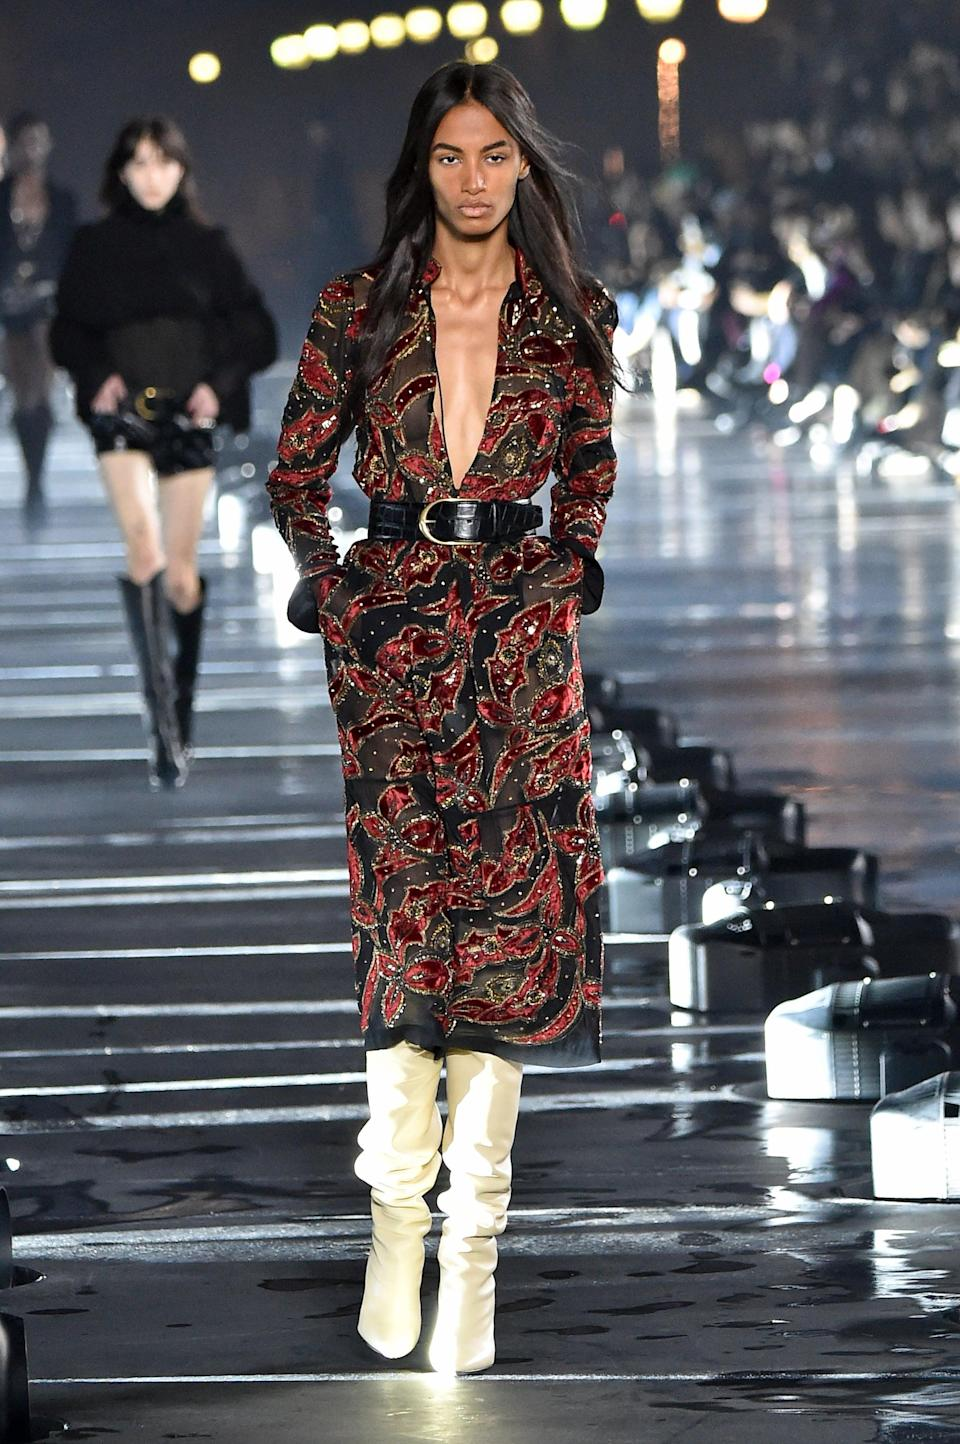 <p>Londoner Sacha Quenby has been one of the most recognizable faces, walking for big names including JW Anderson, Givenchy, and Chloé.</p>